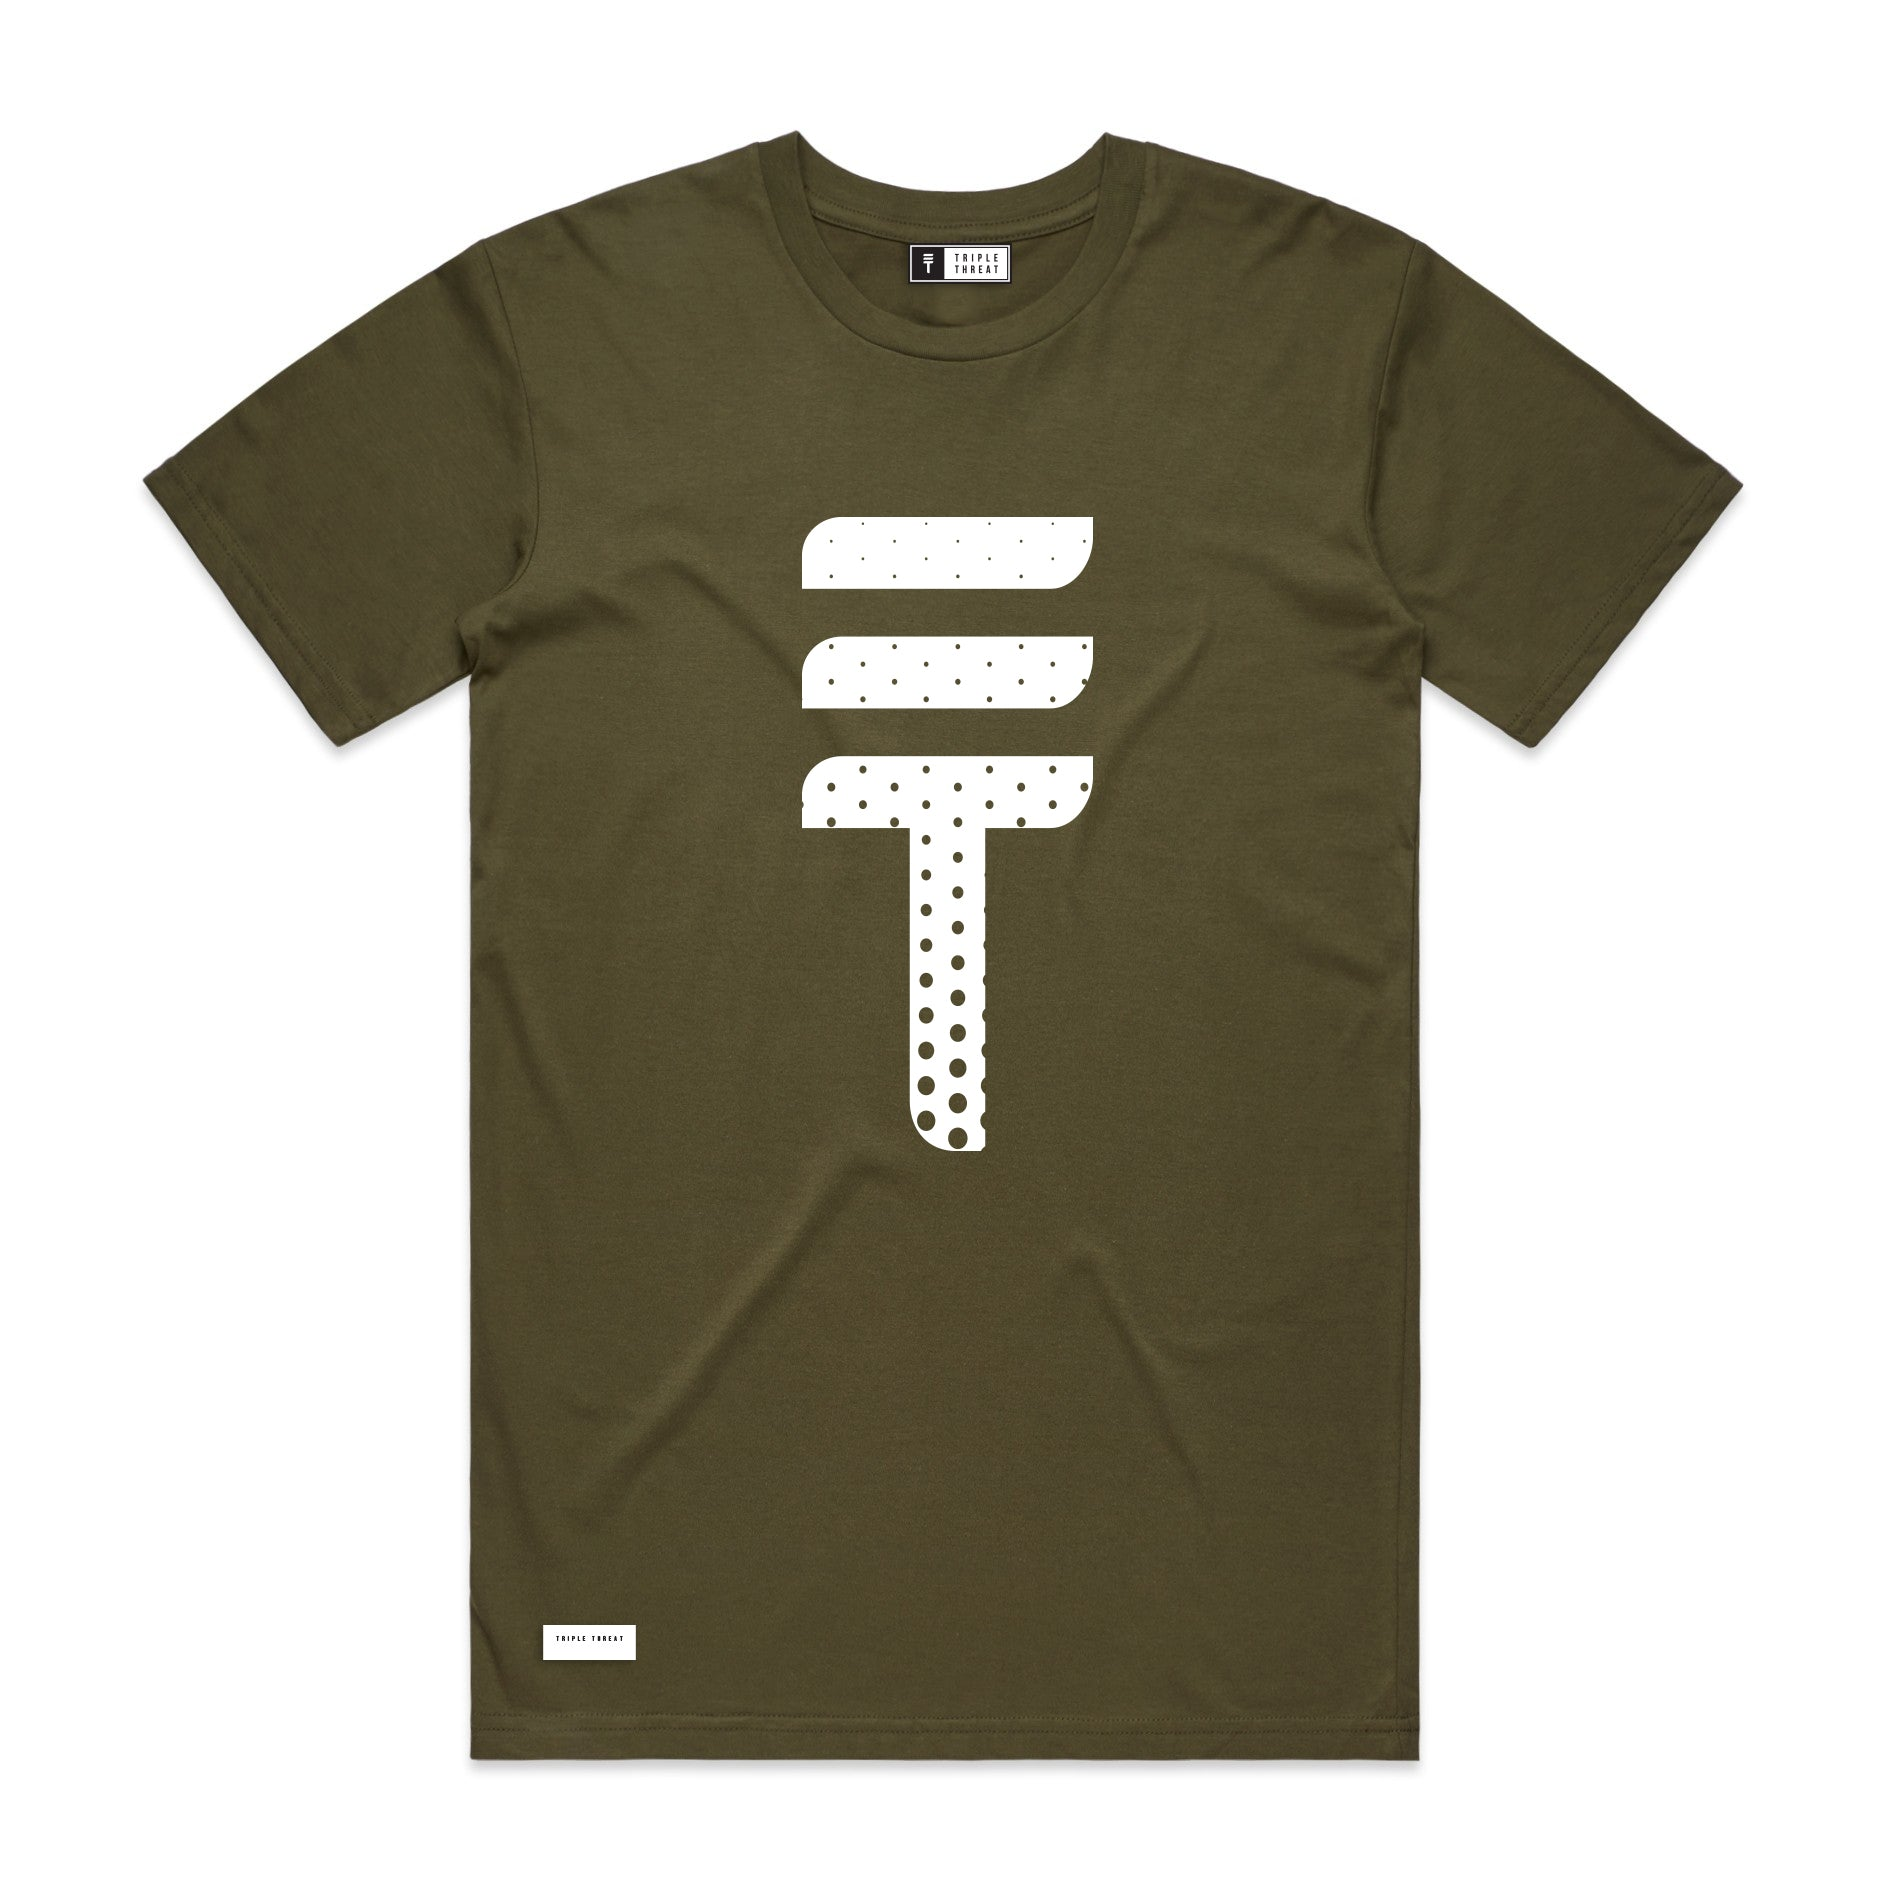 DOTTED T-SHIRT - ARMY